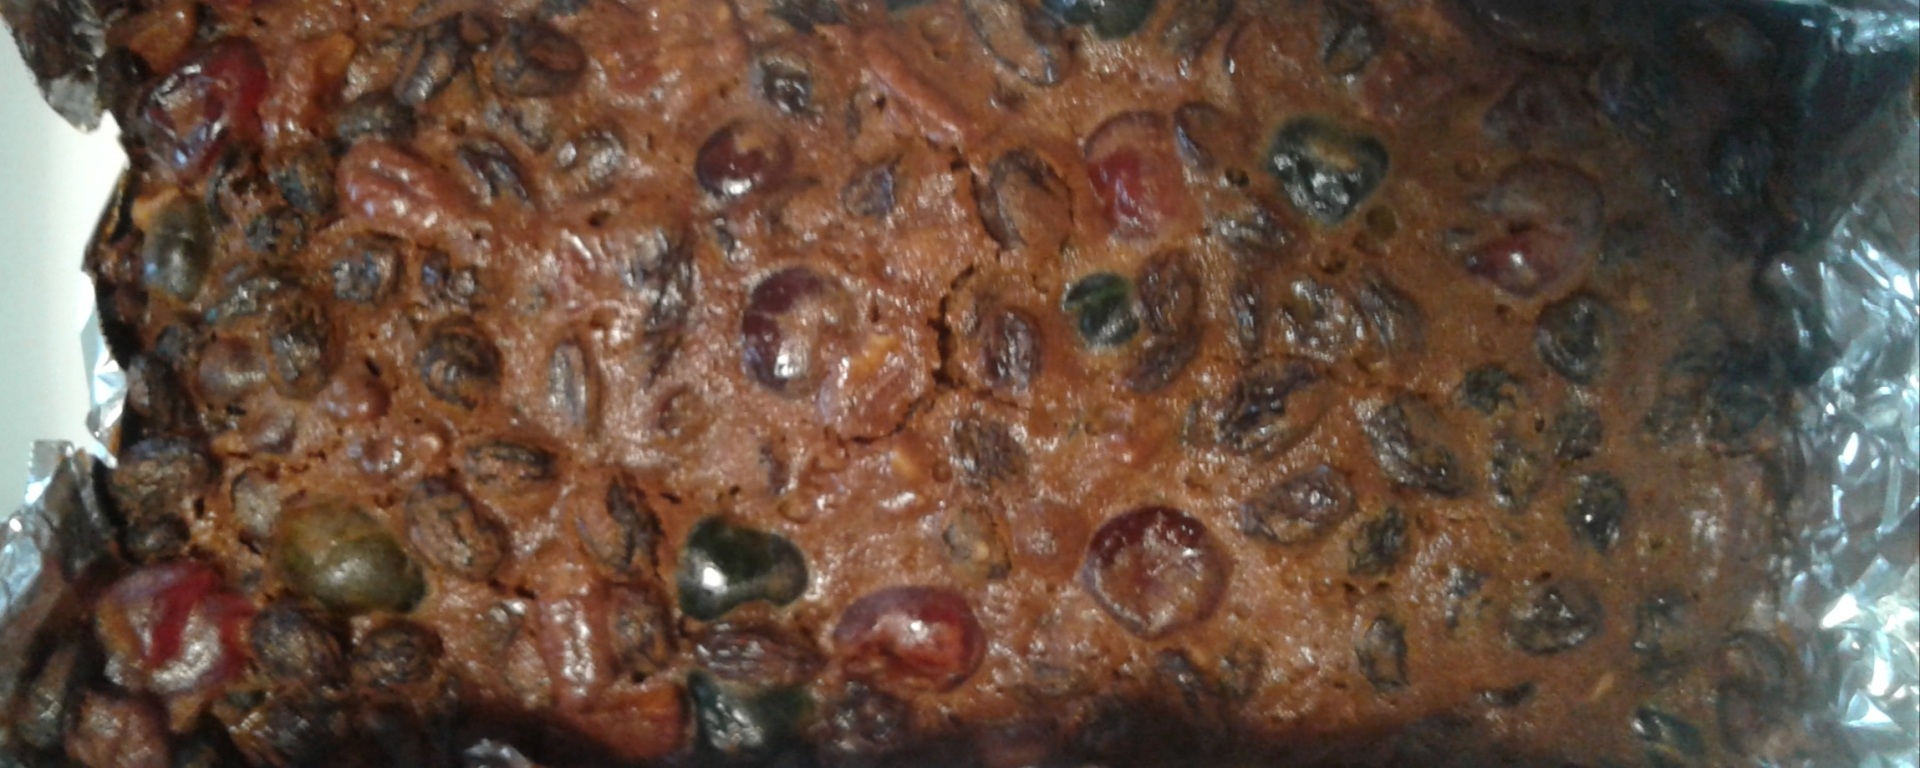 Freshly baked Christmas fruitcake in foil